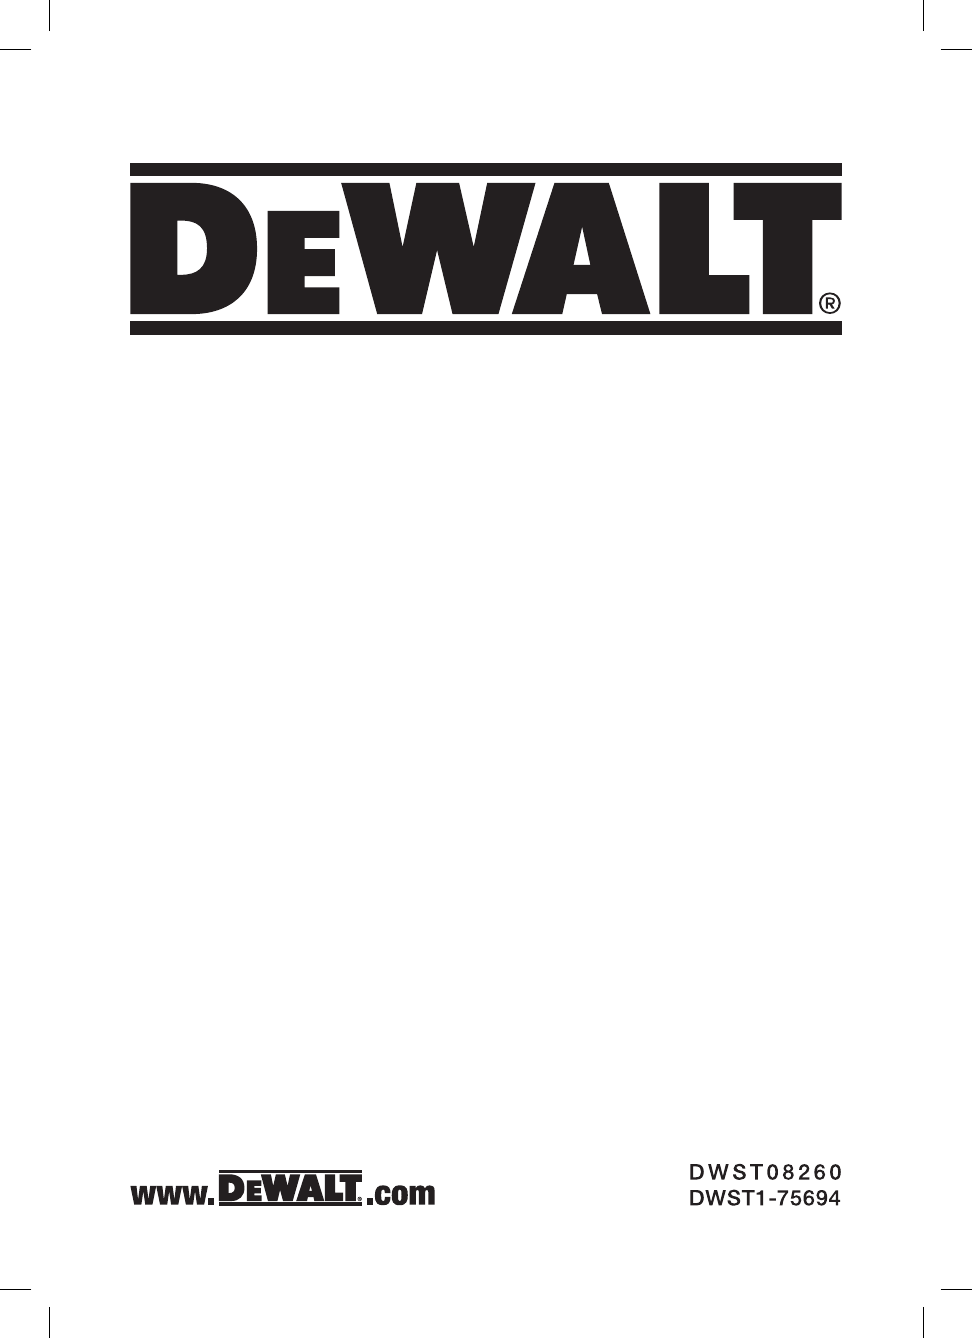 DeWalt DWST260130203204 ToughSystem 25-1/2 in. Workshop